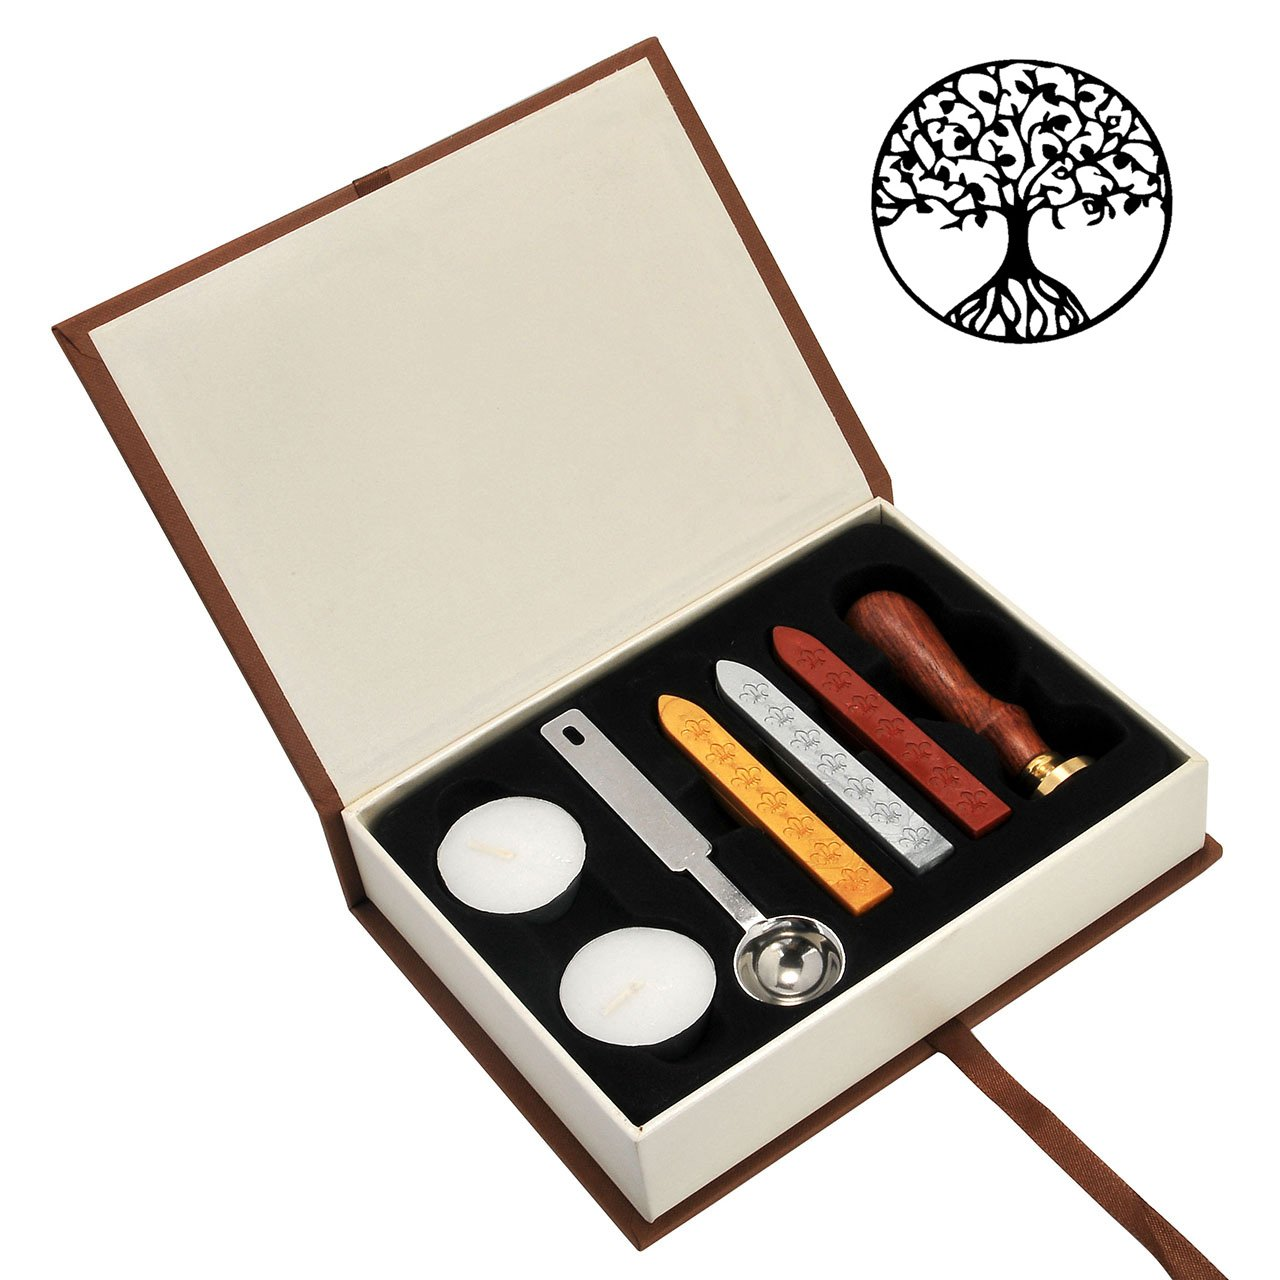 Tree of Life Wax Seal Stamp Set, Yoption Classic Vintage Seal Wax Stamp Set, Retro Seal Stamps Maker Gift Box Set (Tree of Life) by Yoption